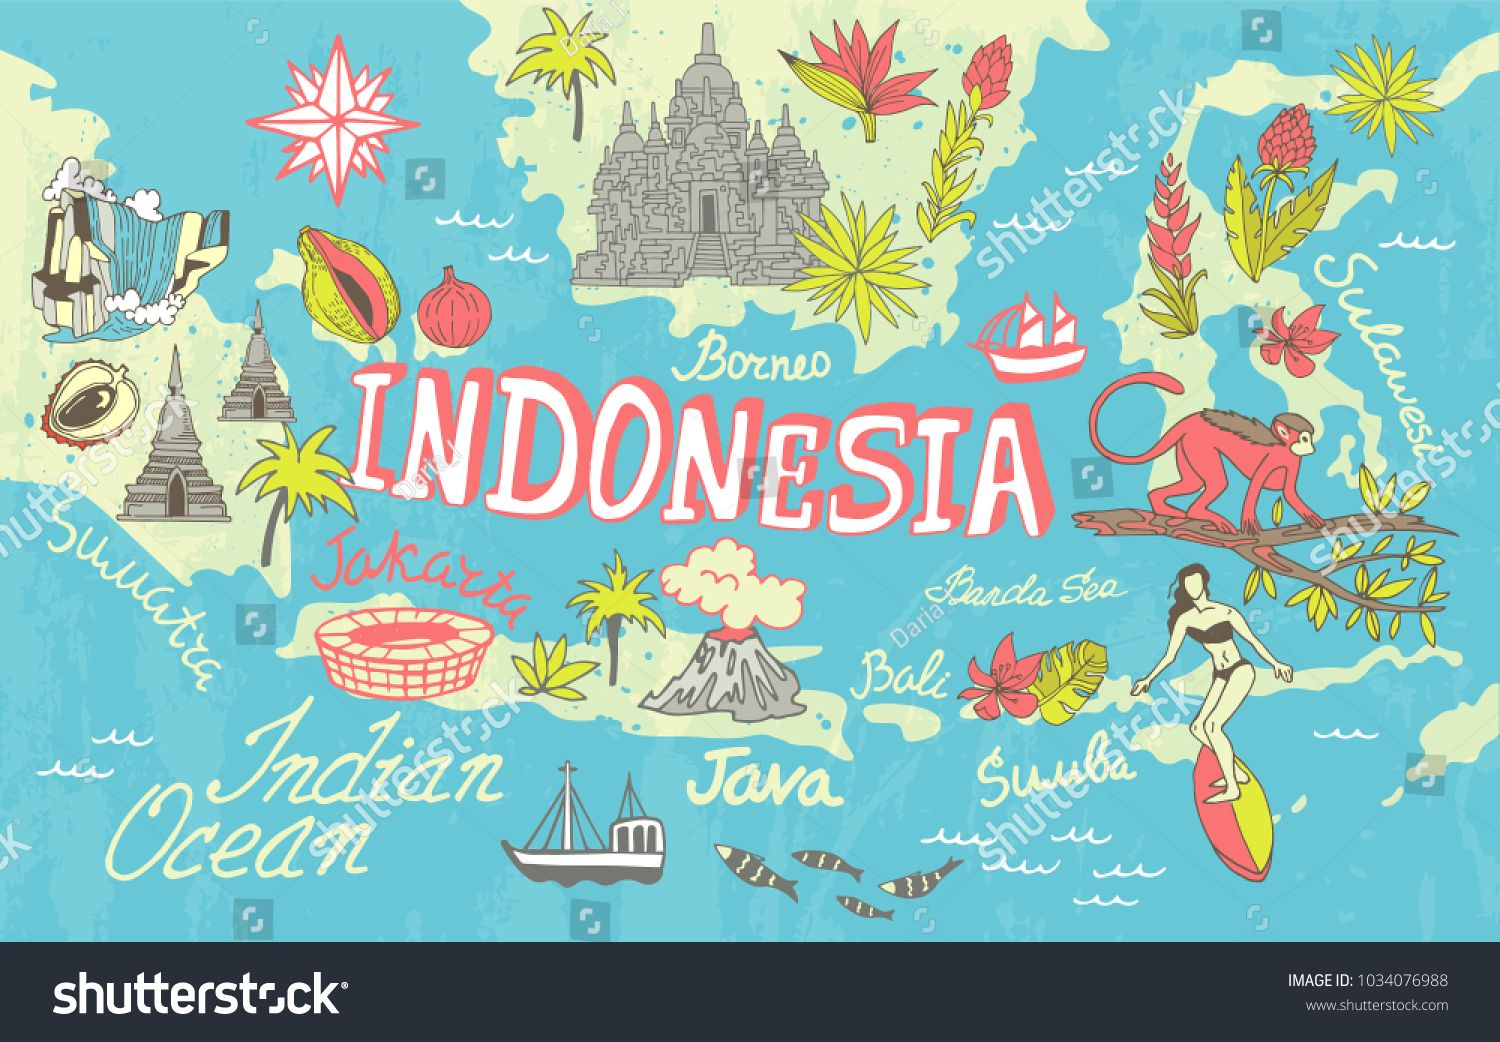 map illustration indonesia poster travel illustrated map map wallpaper travel illustration map wallpaper travel illustration